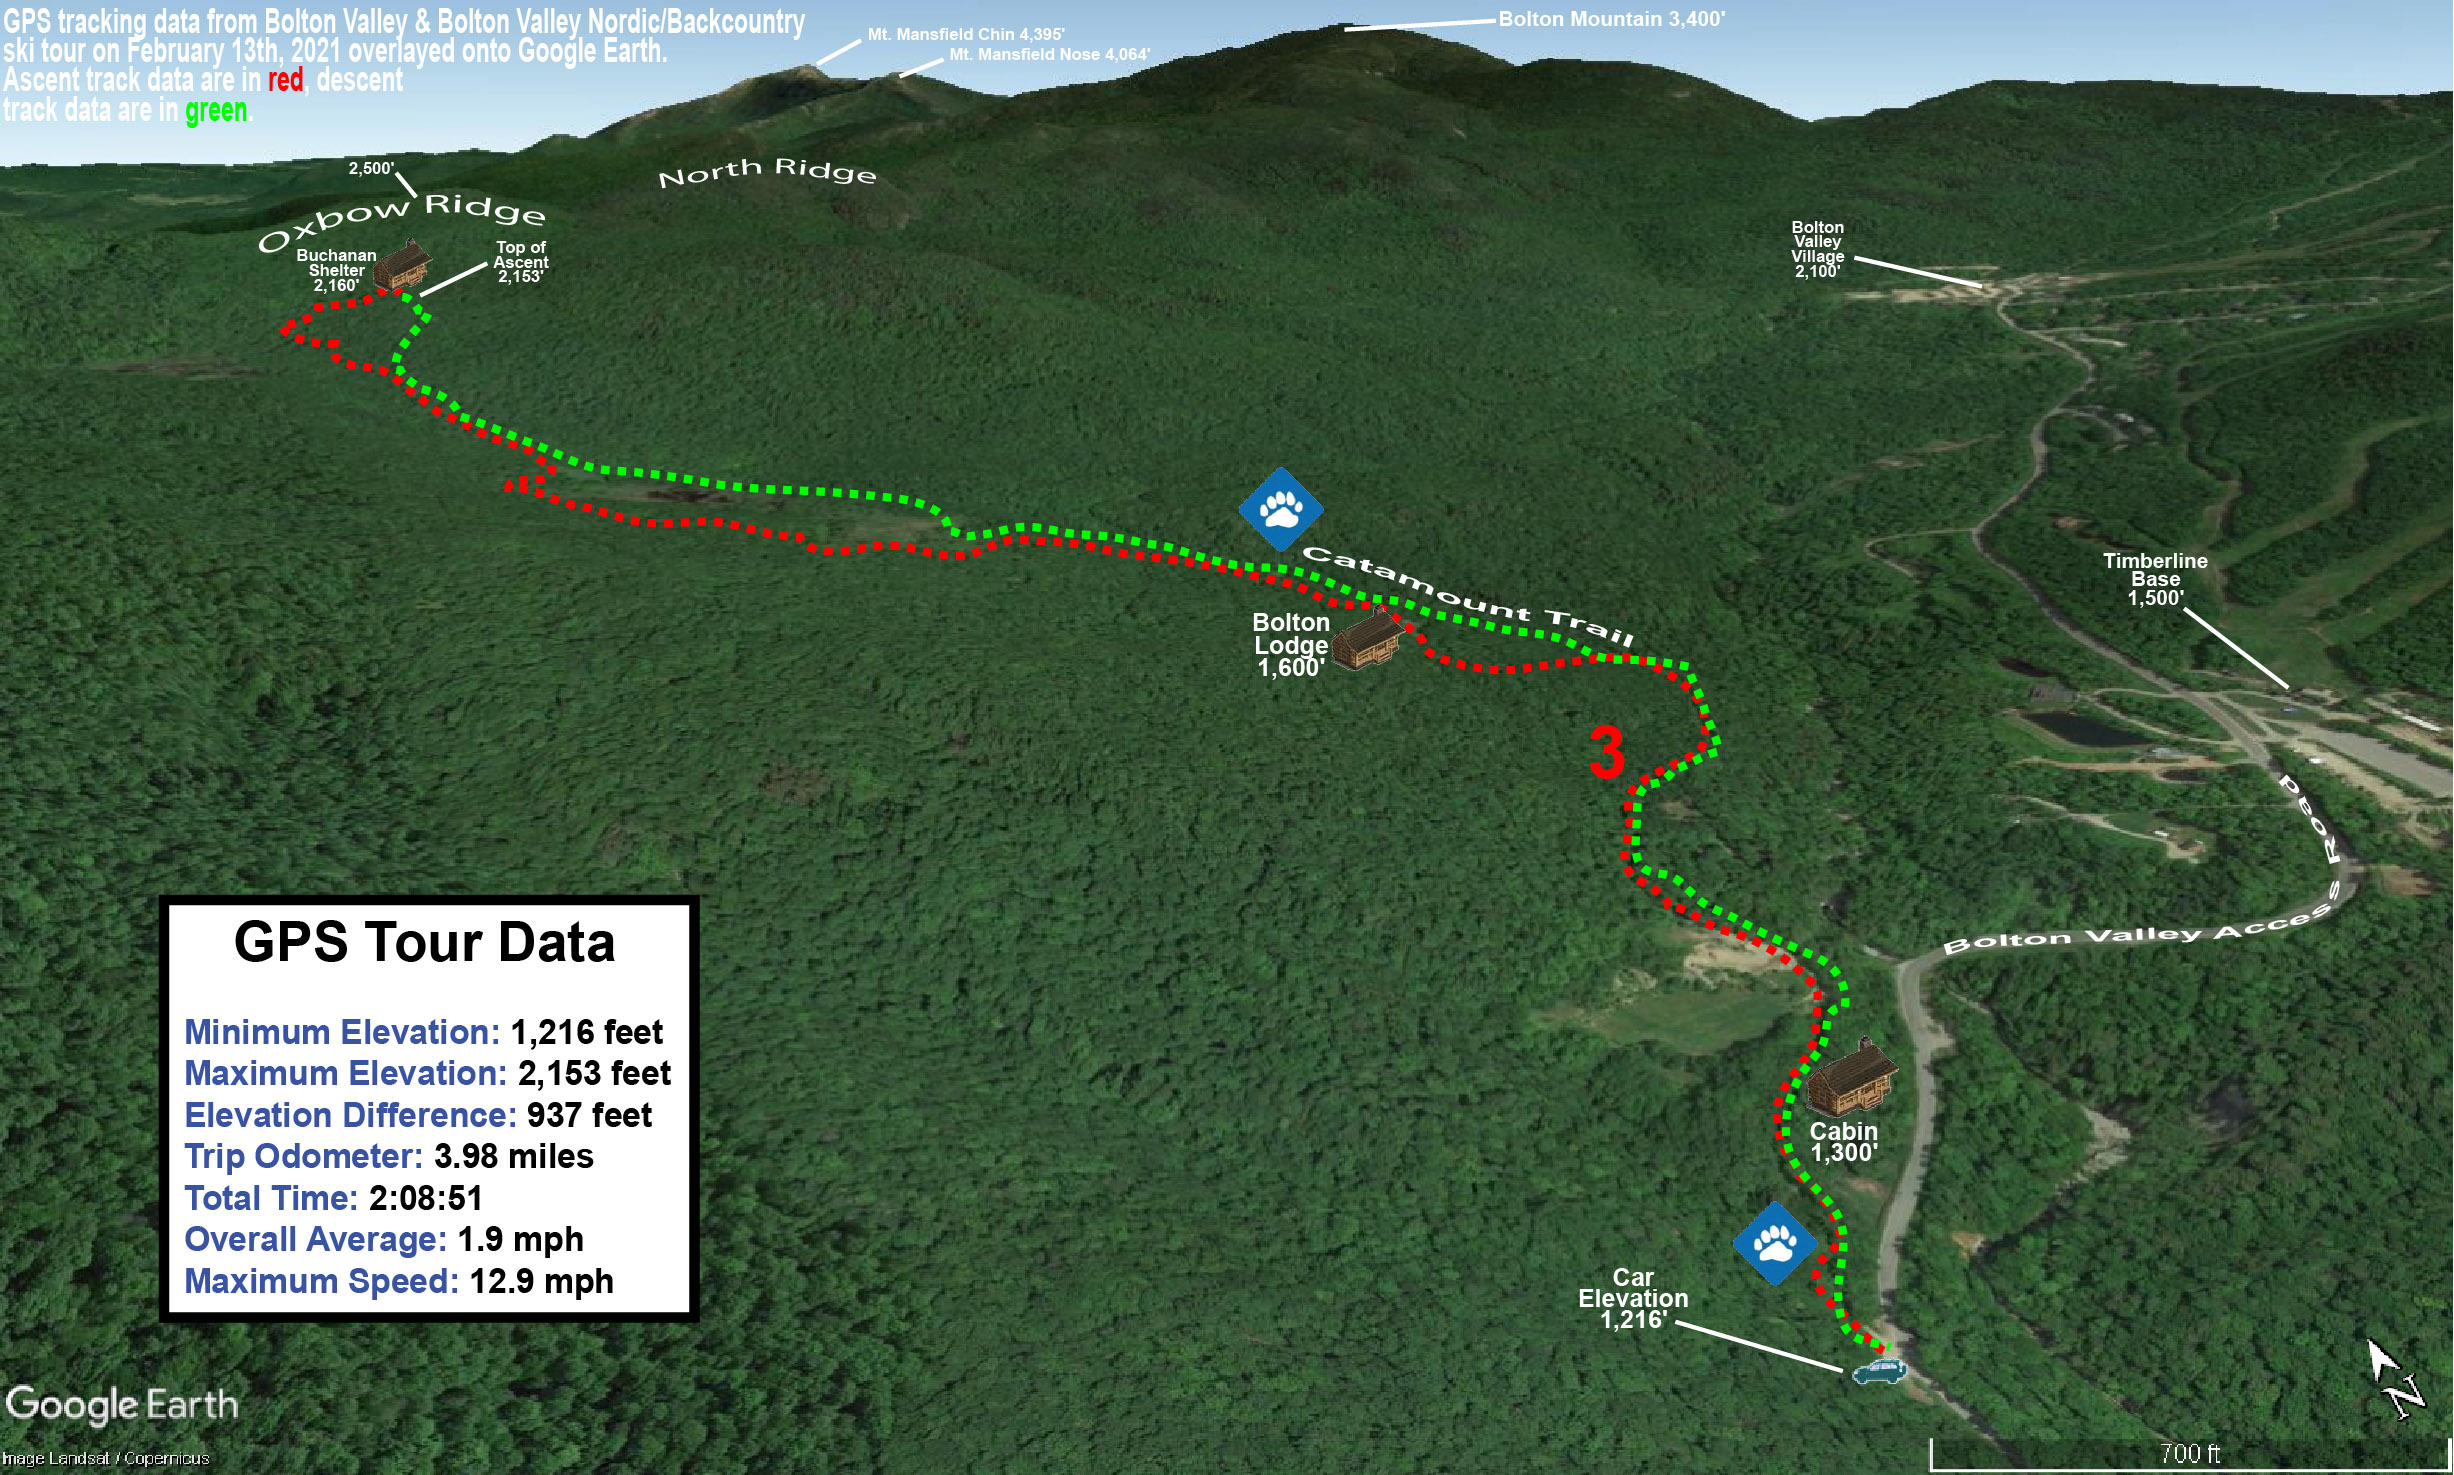 A Google Earth map showing GPS tracking data of a ski tour on the Bolton Valley Nordic & Backcountry Network at Bolton Valley Ski Resort in Vermont